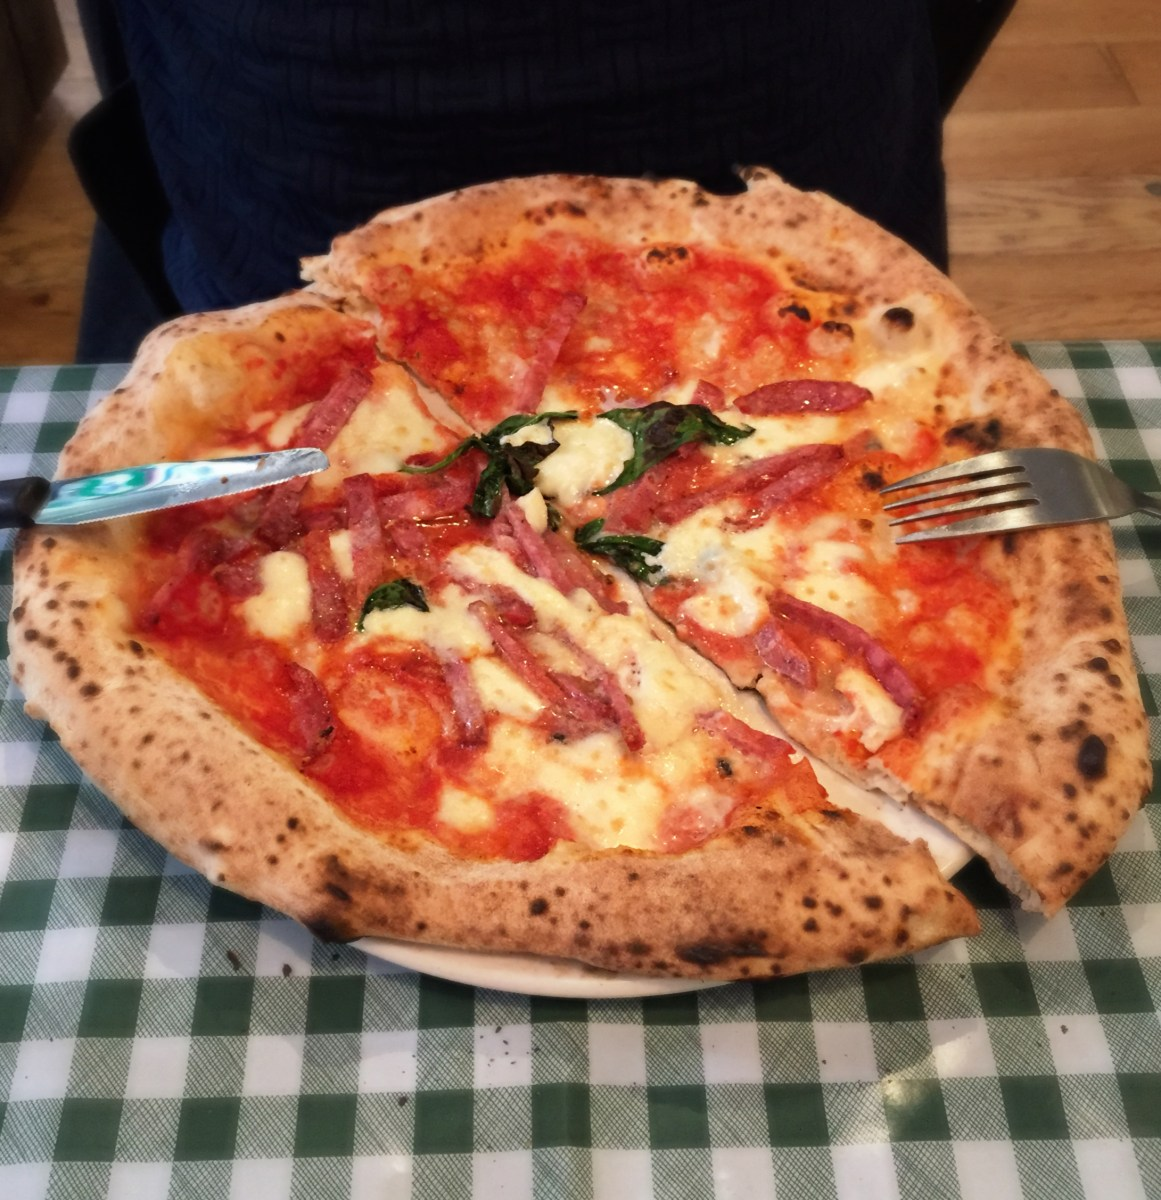 Pizza Perfect | Pizza Pilgrims, 11 Kingly Street, London, W1B 5PW